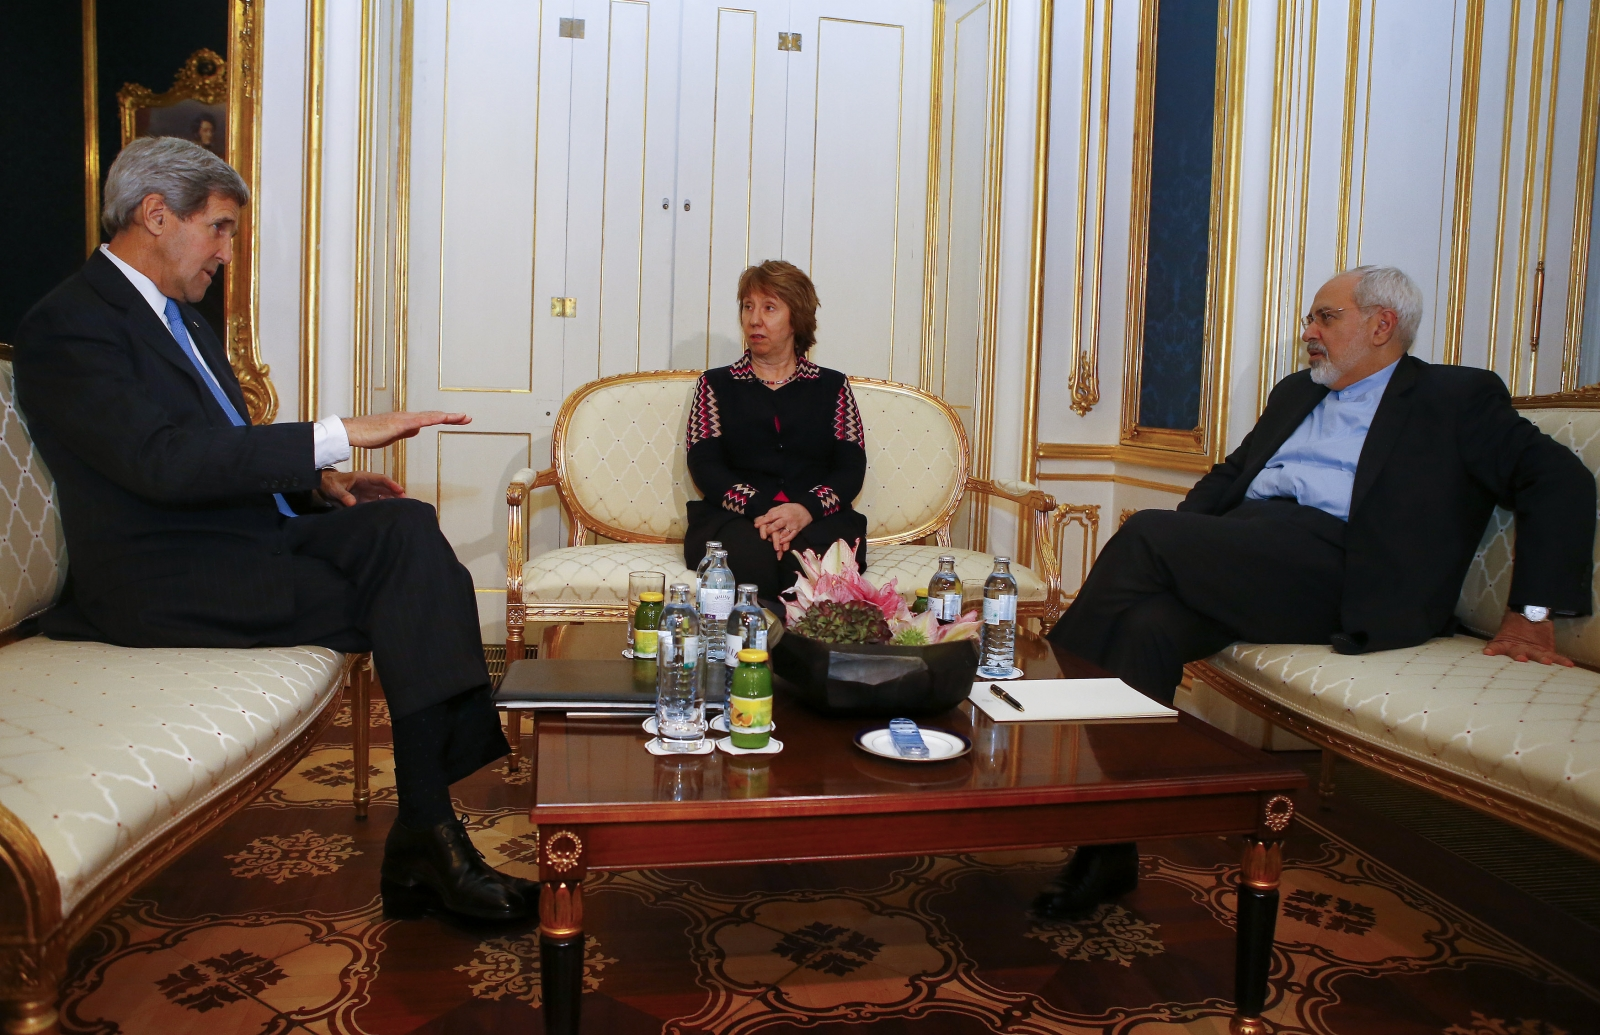 Iran and P5 1 nuclear talks in Vienna